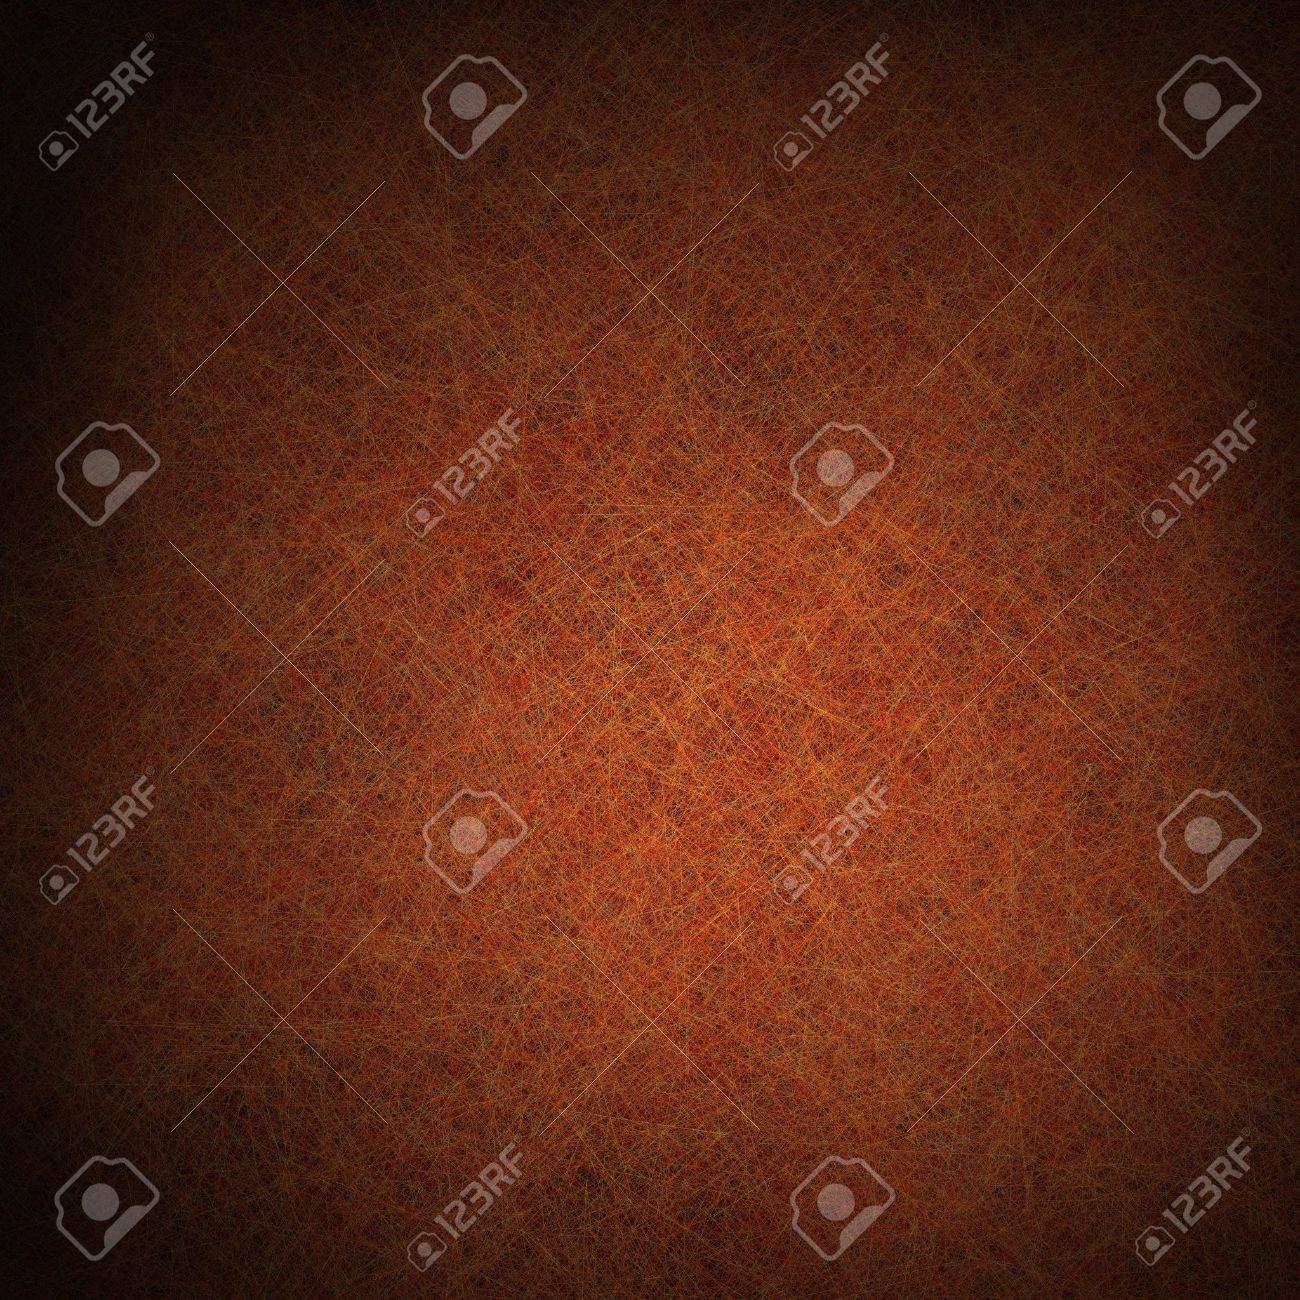 dark brown and black background with vintage grunge texture and soft center highlight for copyspace for ad or brochure Stock Photo - 12624009